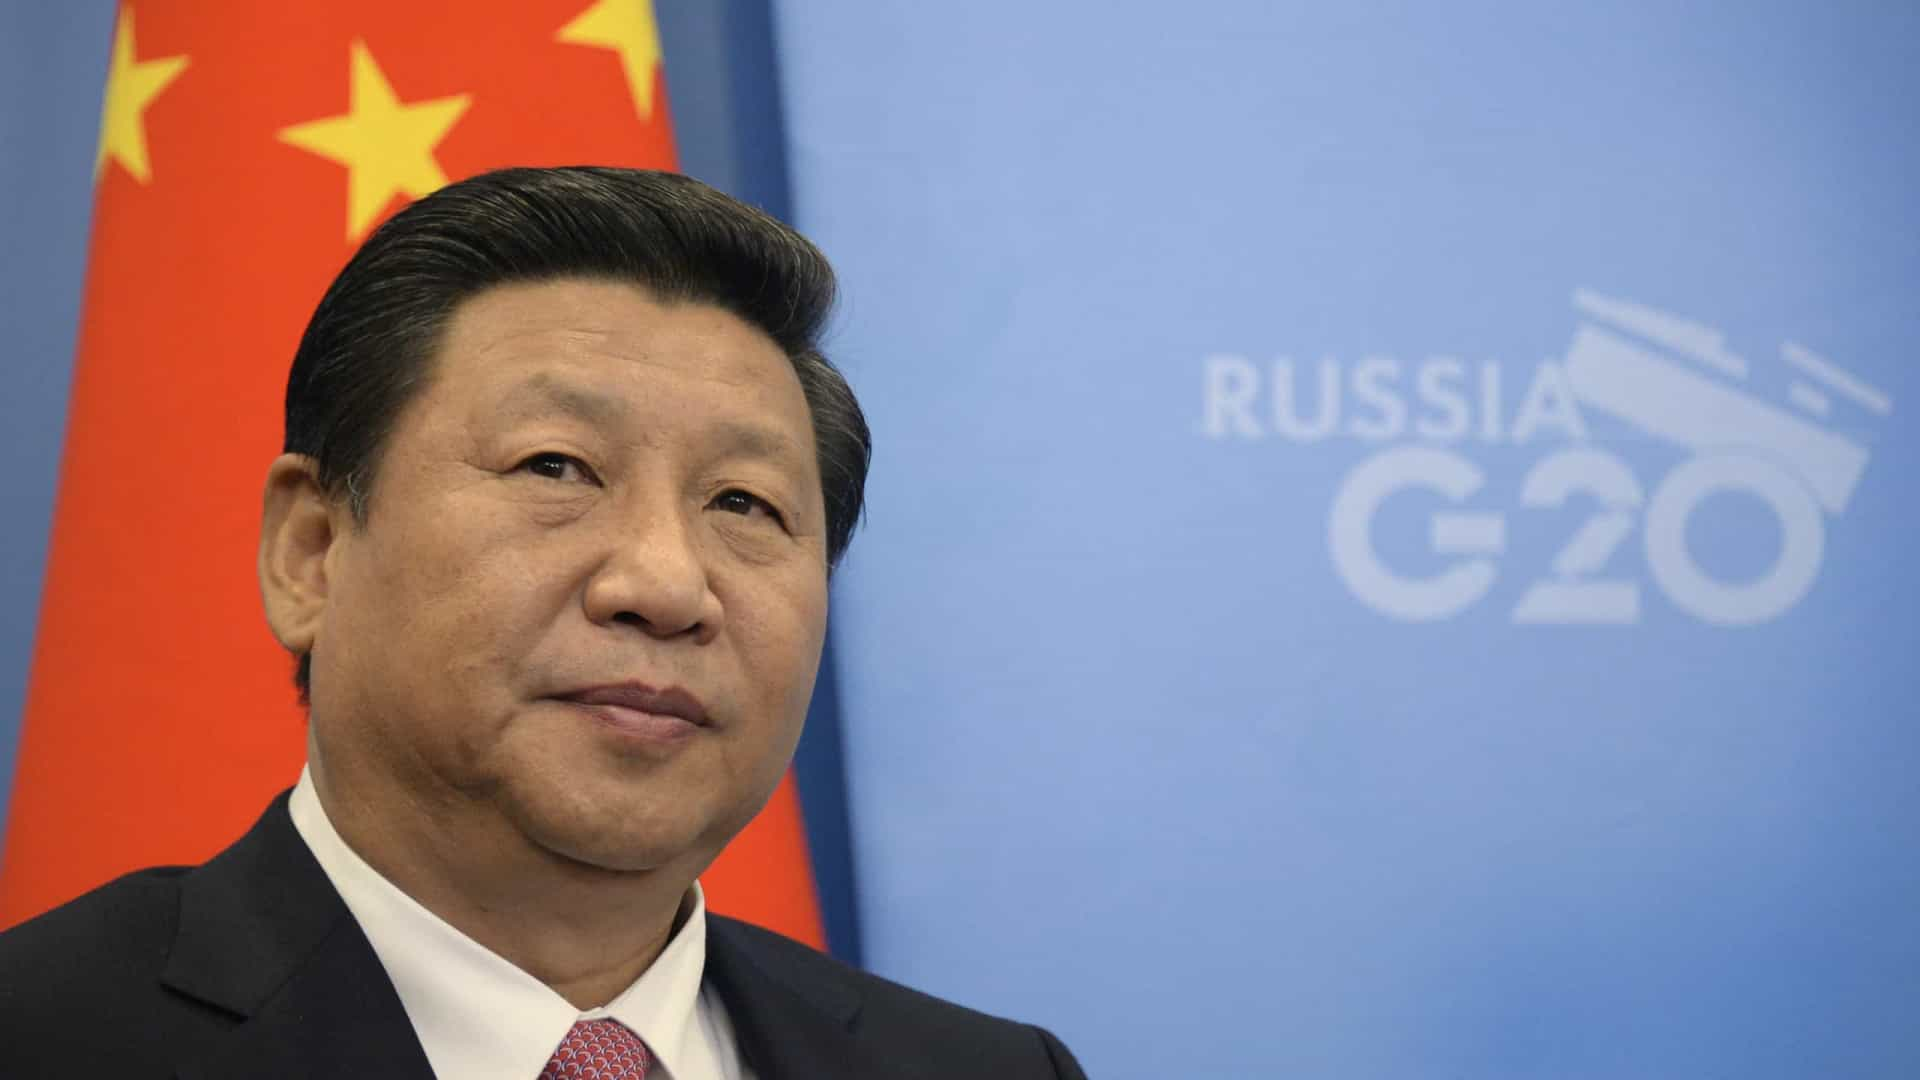 China: Xi Jiping adverte que